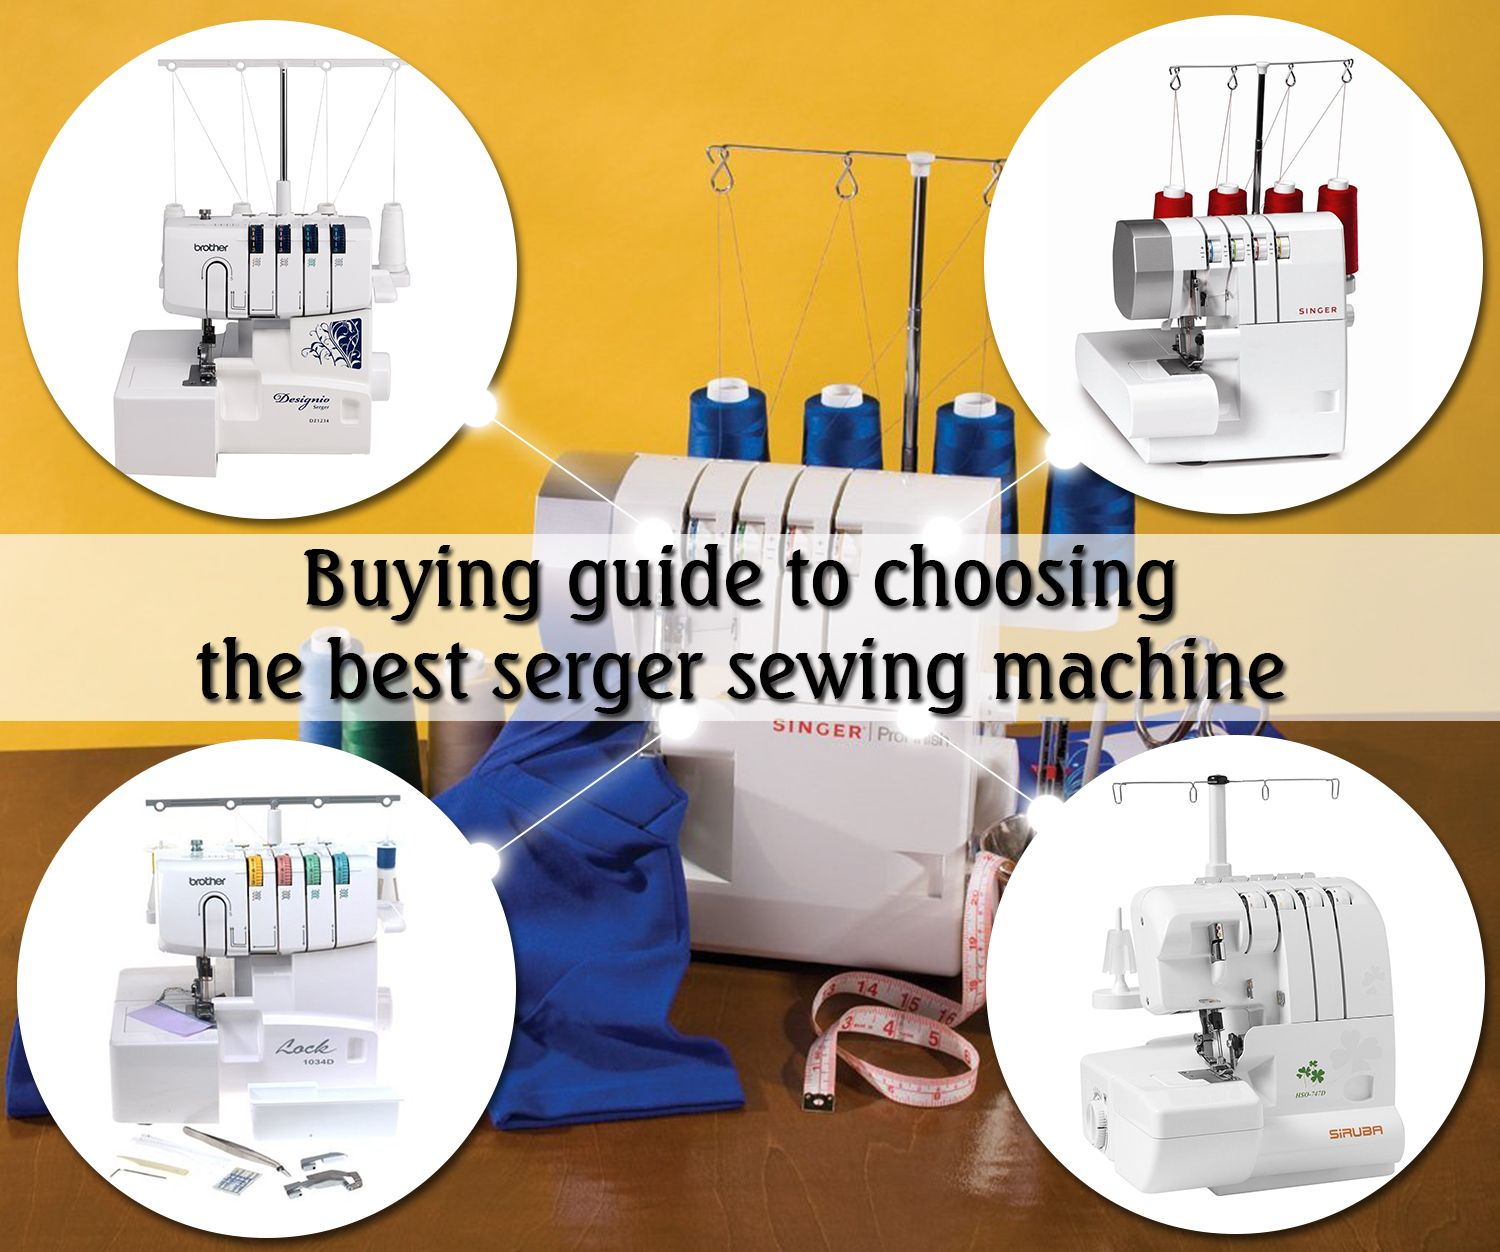 Buying guide to choosing the best serger sewing machine ...